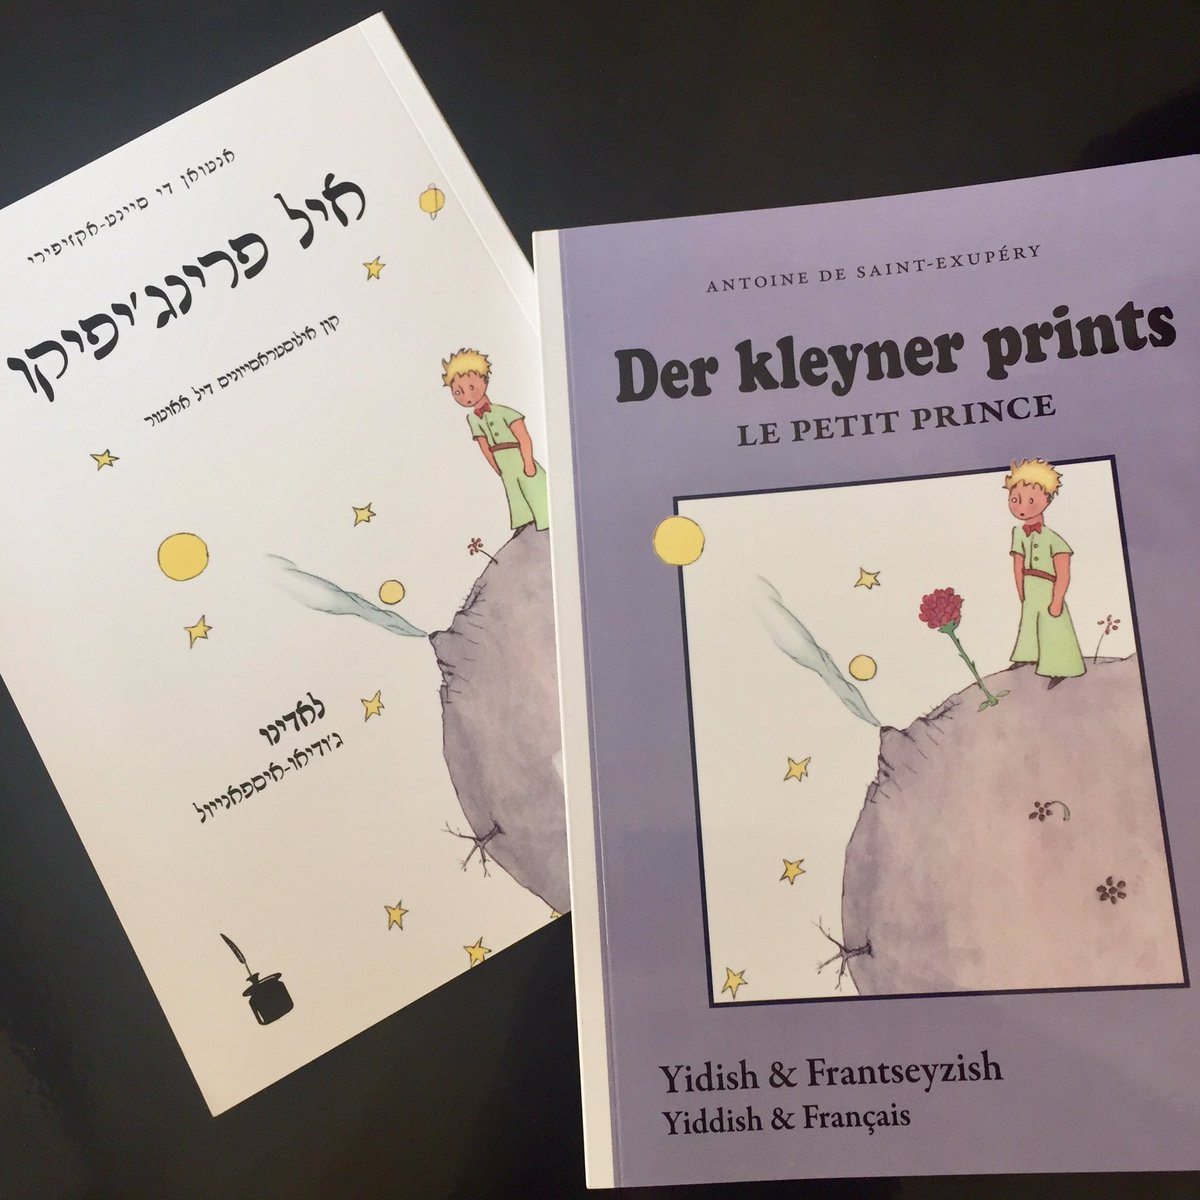 Charming bilingualisms: &quot;The Little Prince&quot; in #Yiddish/#French and #Ladino/Judeo-Spanish (#Hebrew &amp; Roman scripts). #translation #literary <br>http://pic.twitter.com/L0D9nsrcgM